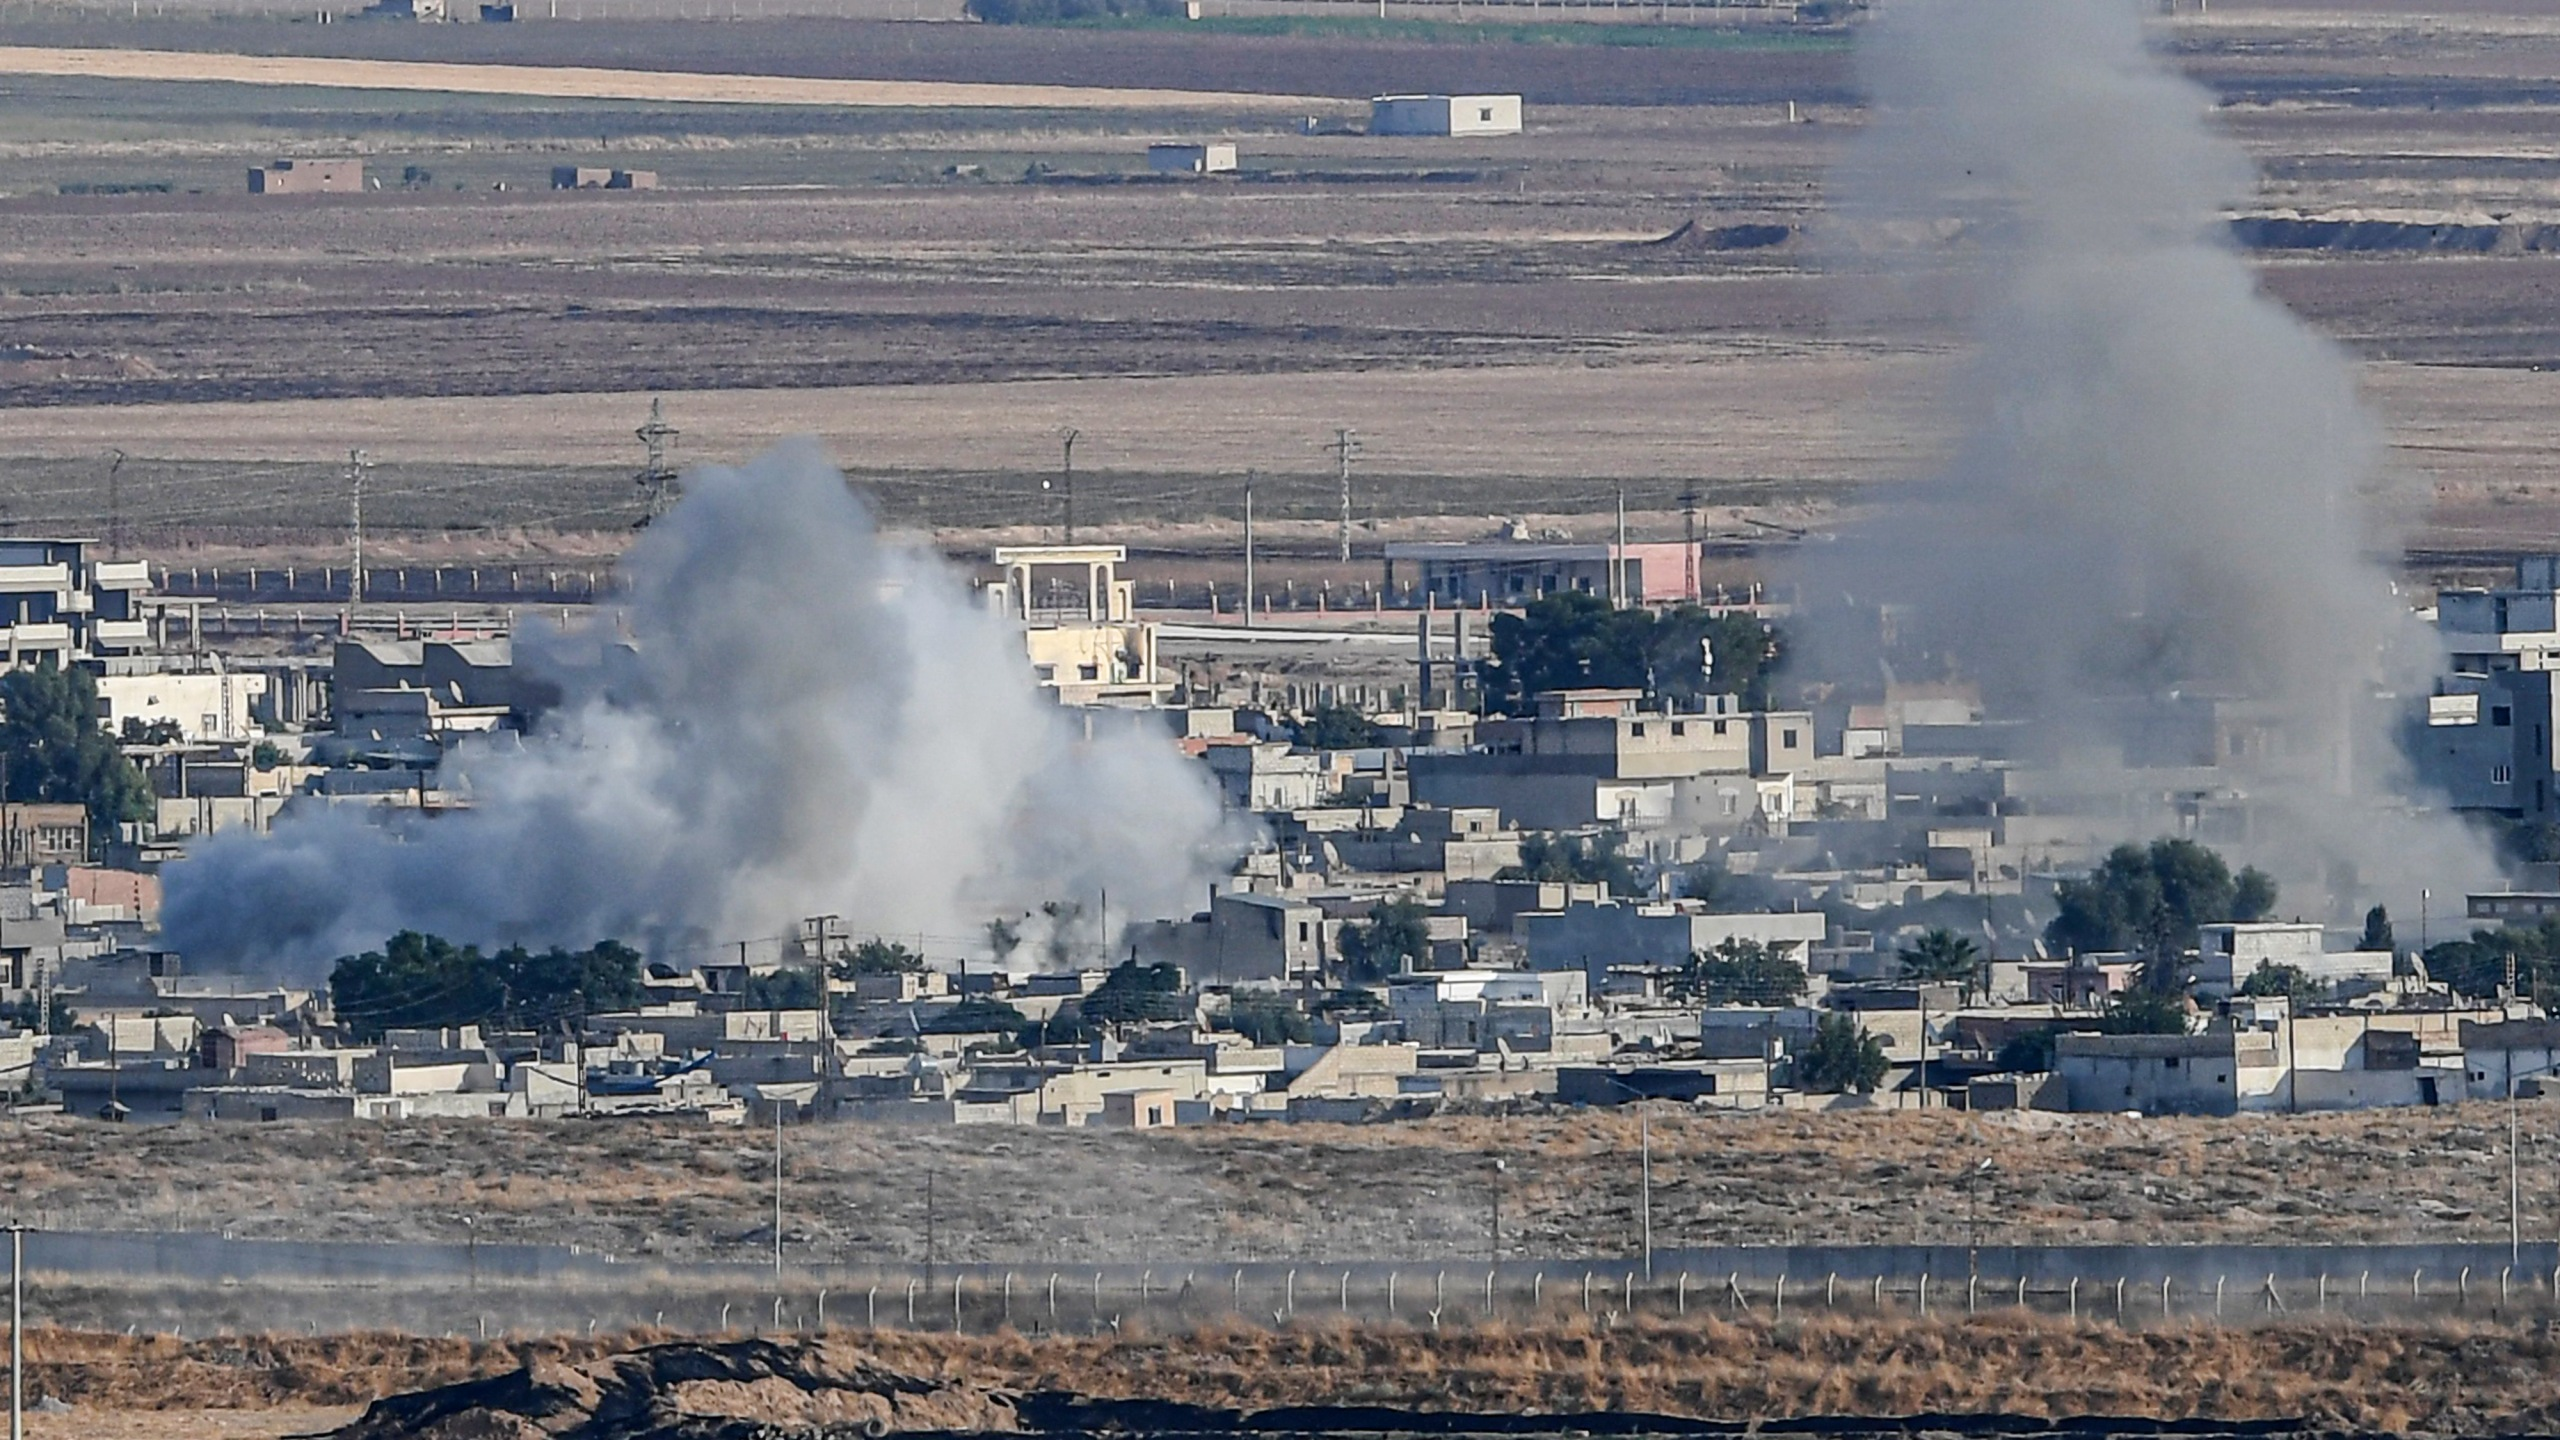 This picture taken on Oct. 15, 2019, from the Turkish side of the border at Ceylanpinar district in Sanliurfa shows smoke rising from the Syrian town of Ras al-Ain on the first week of Turkey's military operation against Kurdish forces. (Credit: OZAN KOSE/AFP via Getty Images)